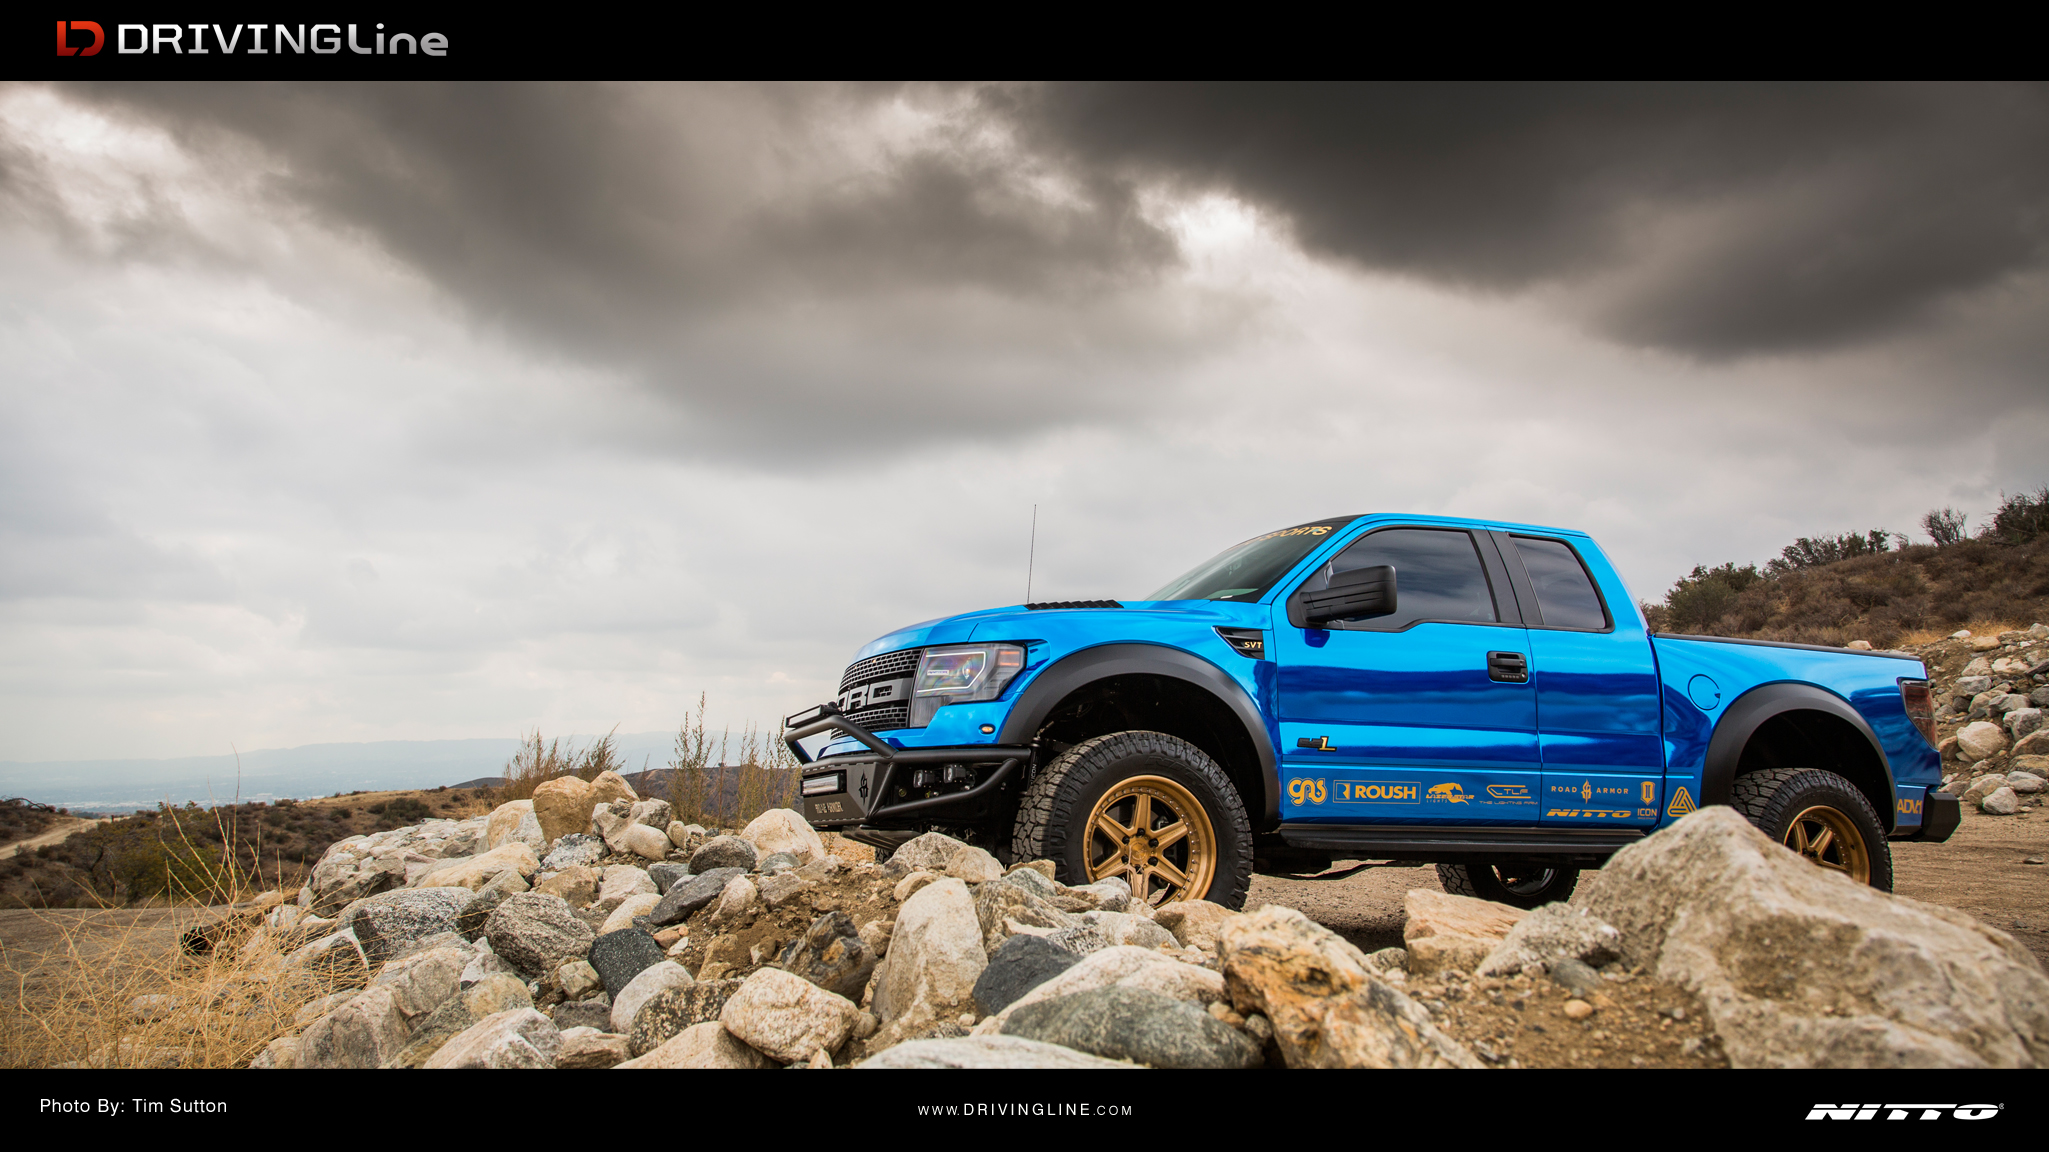 Best Used Diesel Truck >> Galpin Auto Sports Ford Raptor Wallpaper | DrivingLine